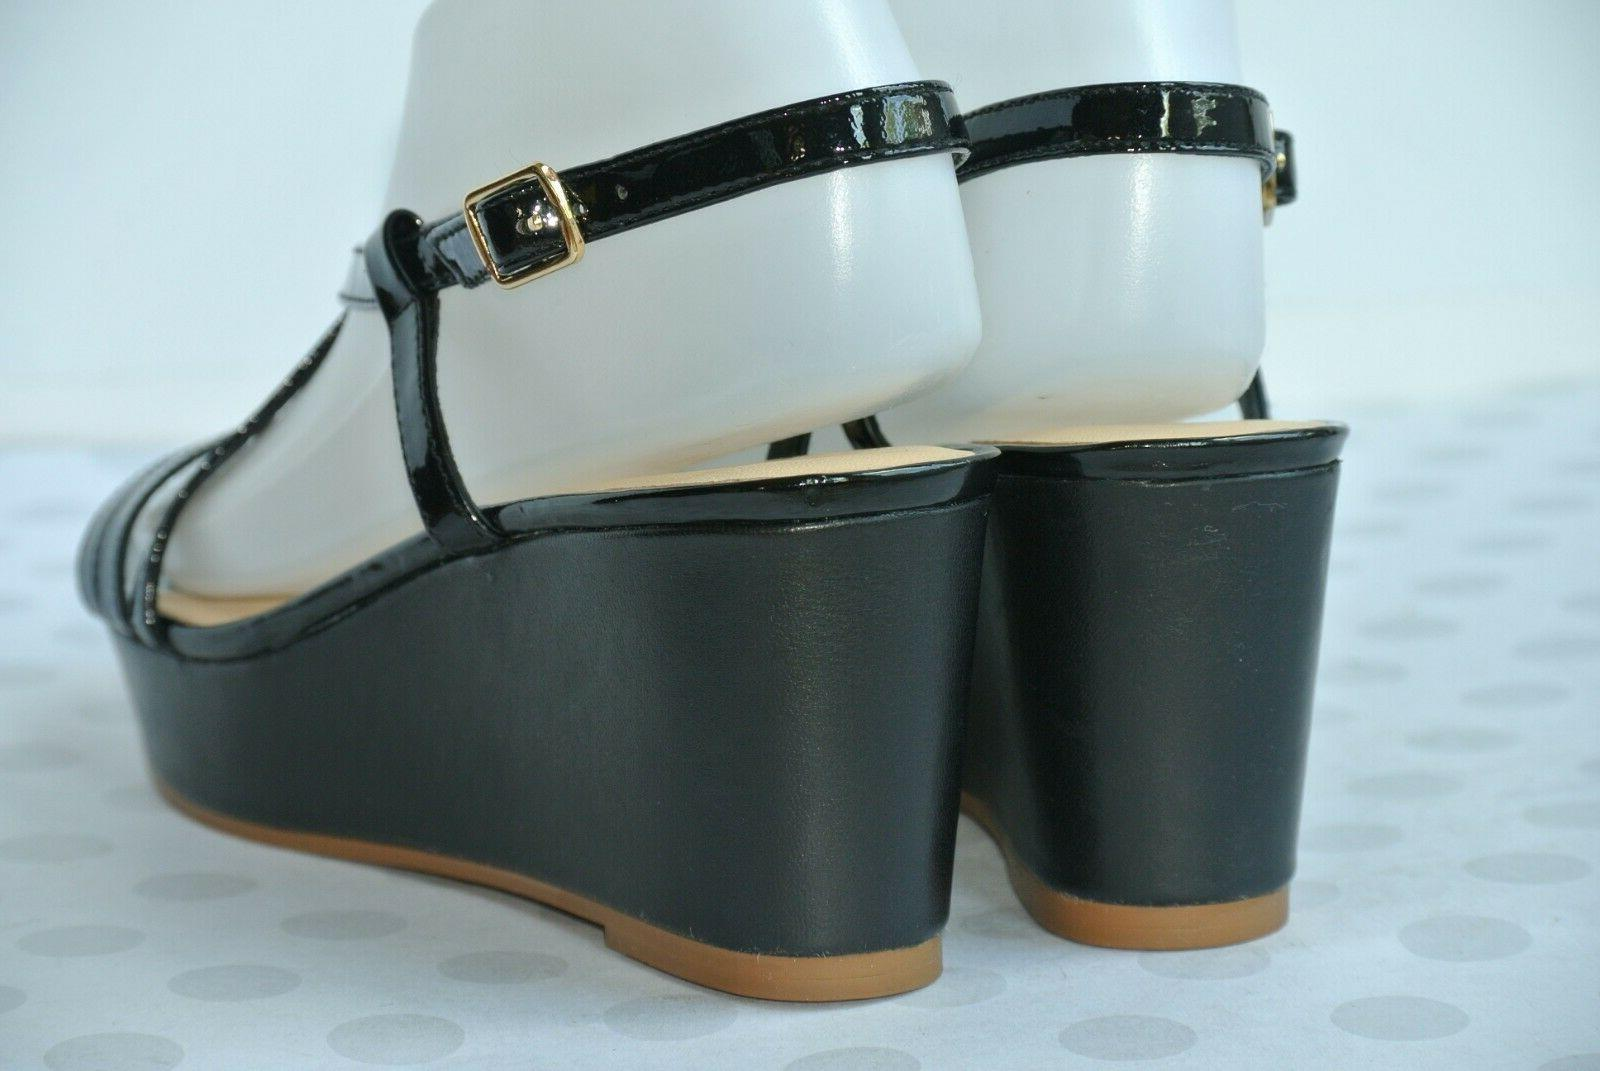 NEW Spade York Black Wedge Sandals Heels